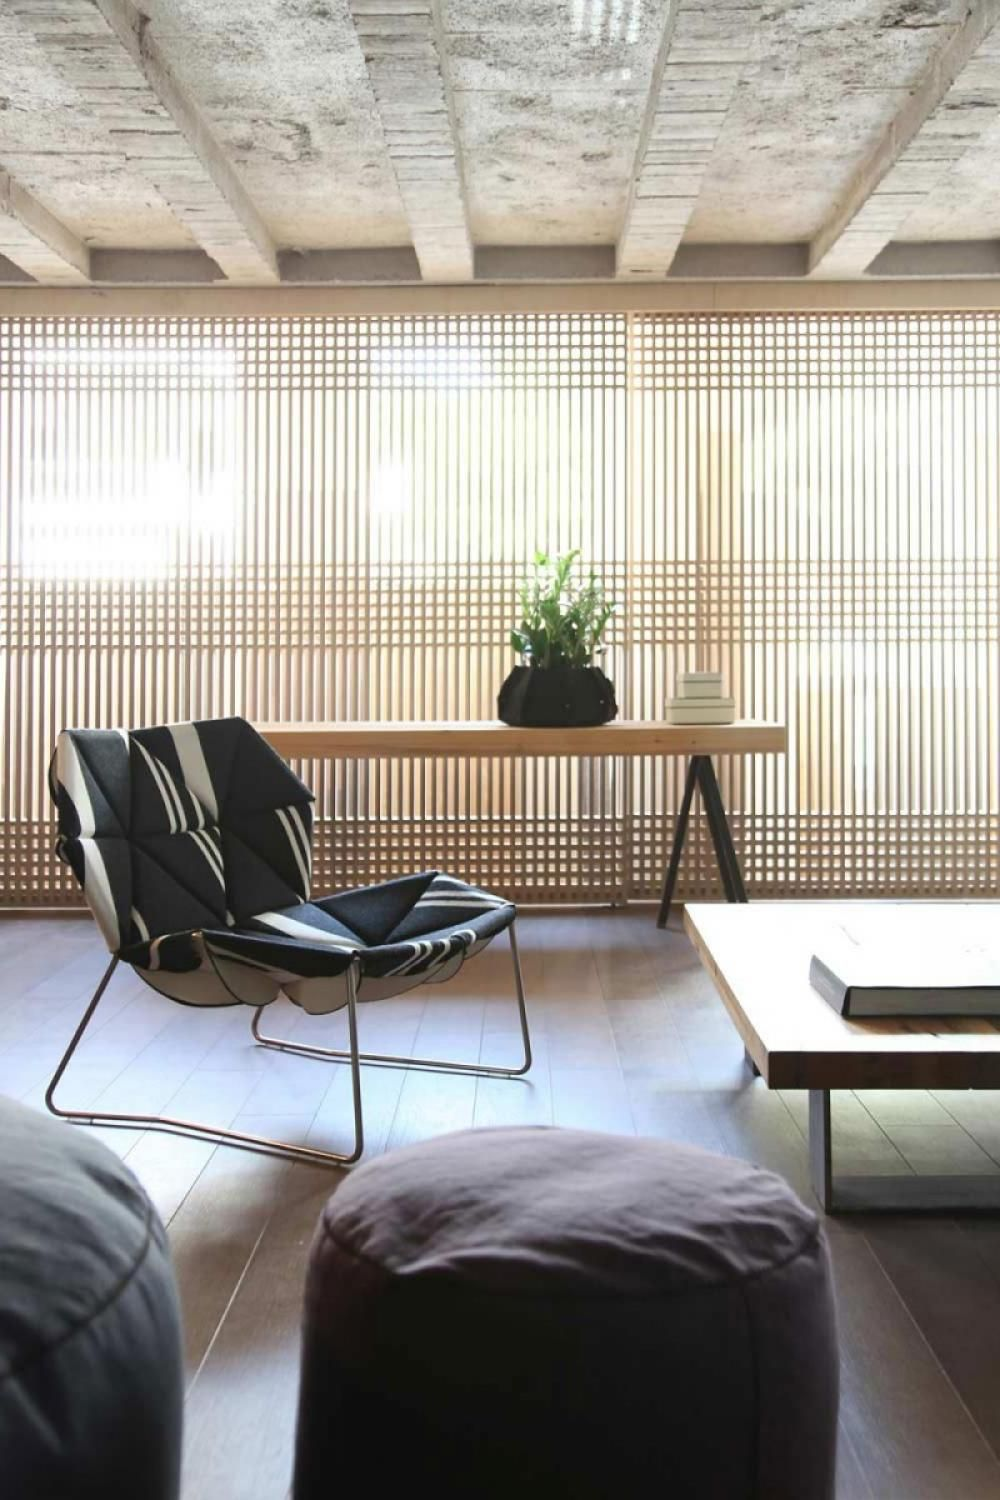 Good House Air Circulation And Bright Light Interior Minimalist With Natural Portable Garden Home Design